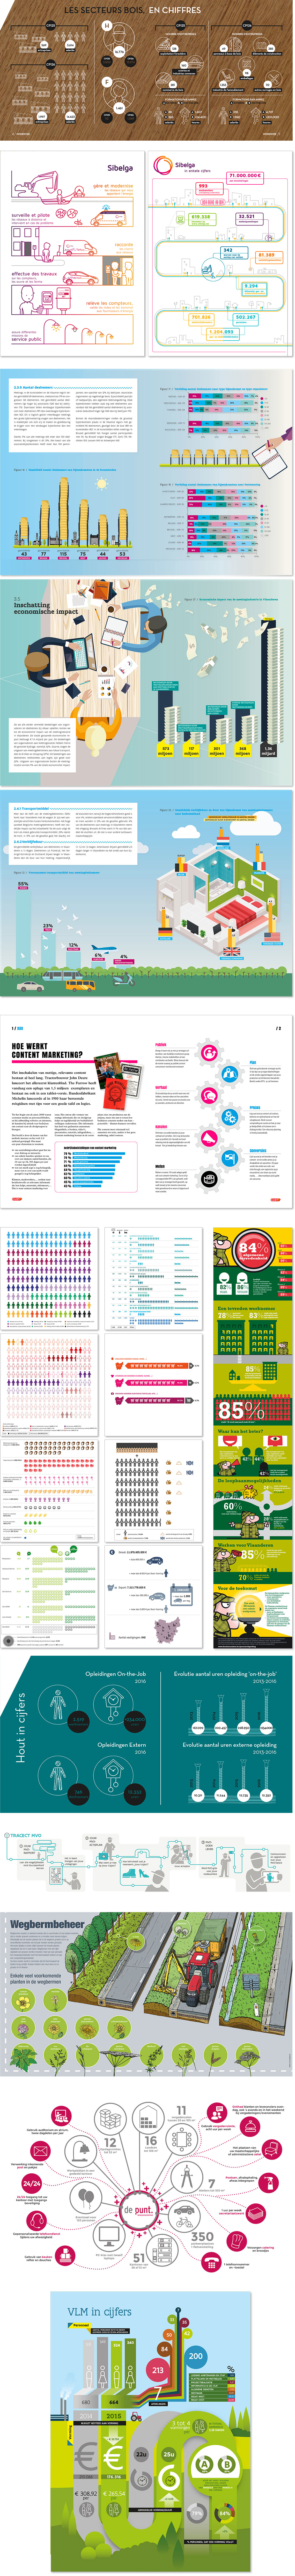 We love infographics